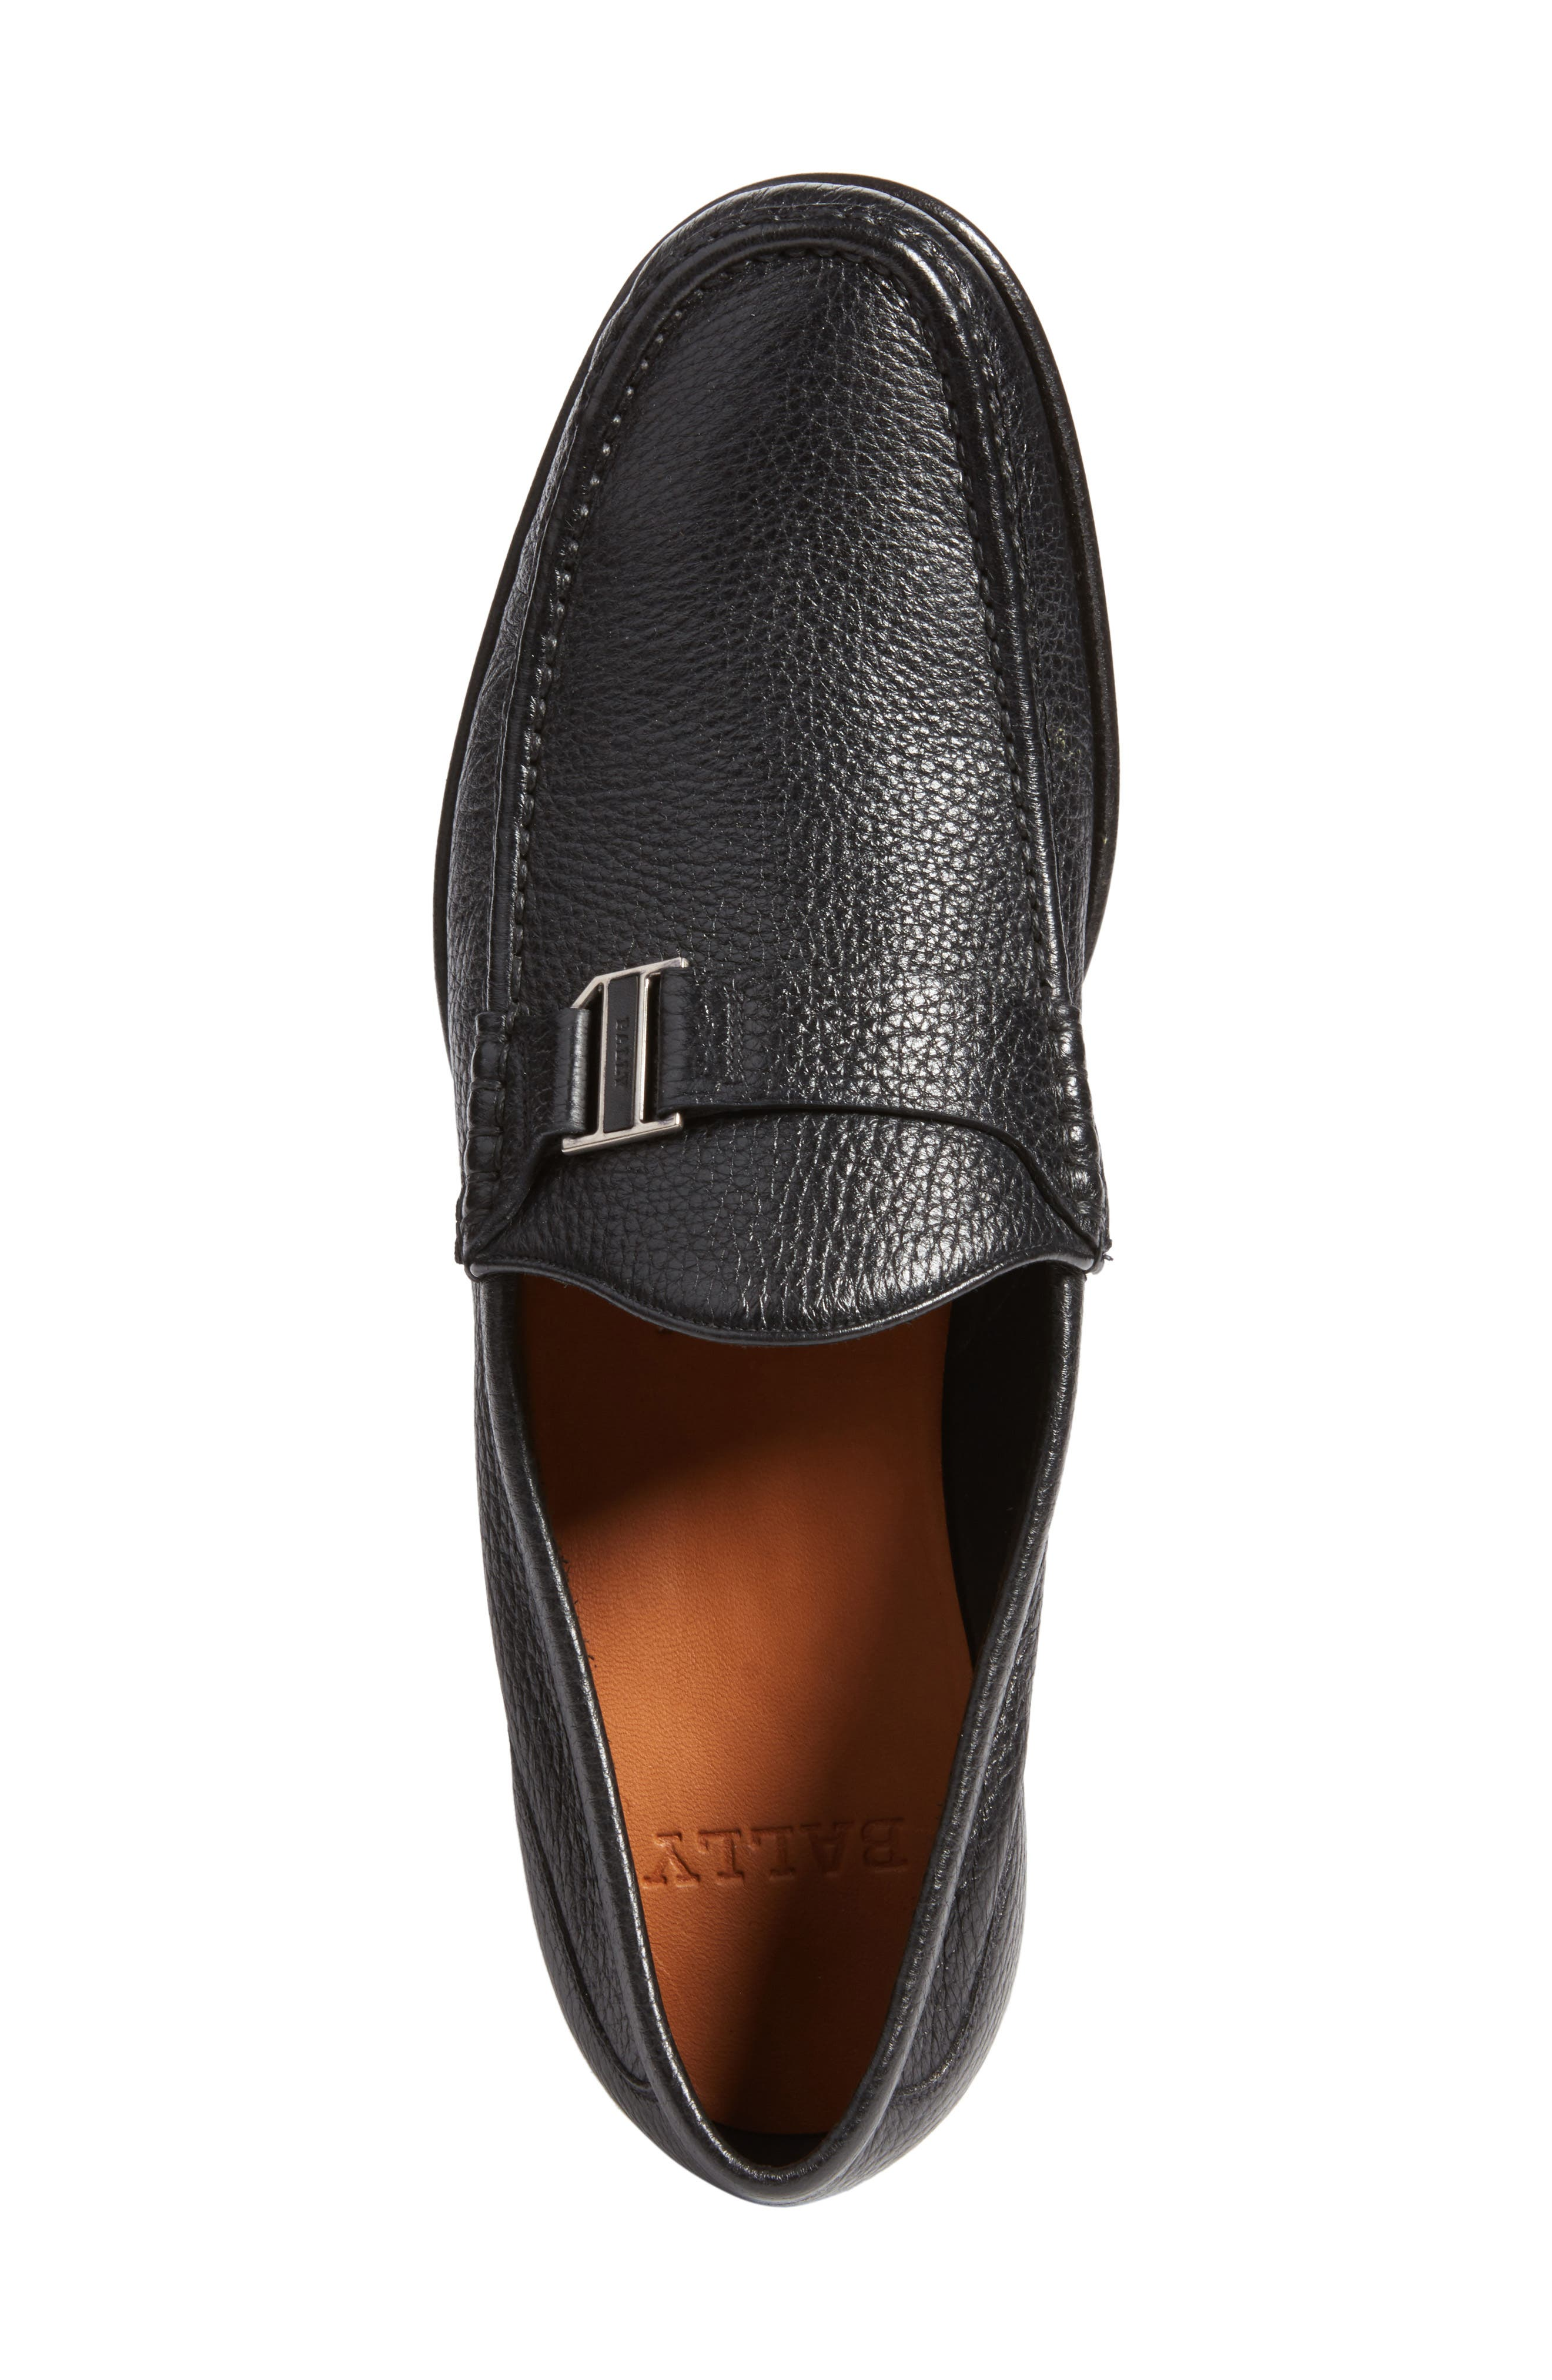 Suver Loafer,                             Alternate thumbnail 5, color,                             001